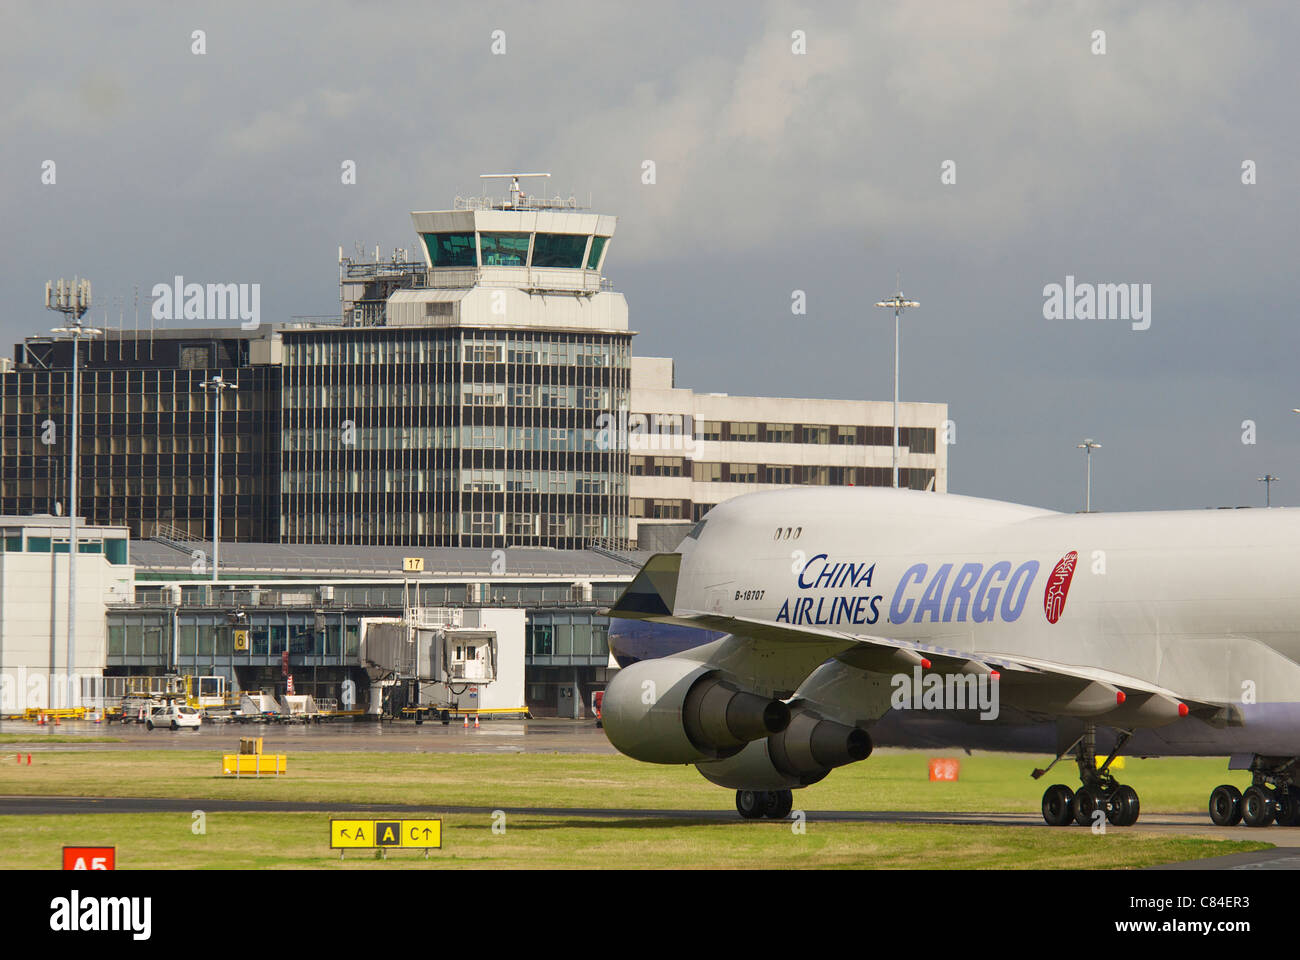 China Airlines cargo jumbo Boeing 747 at Manchester airport. - Stock Image